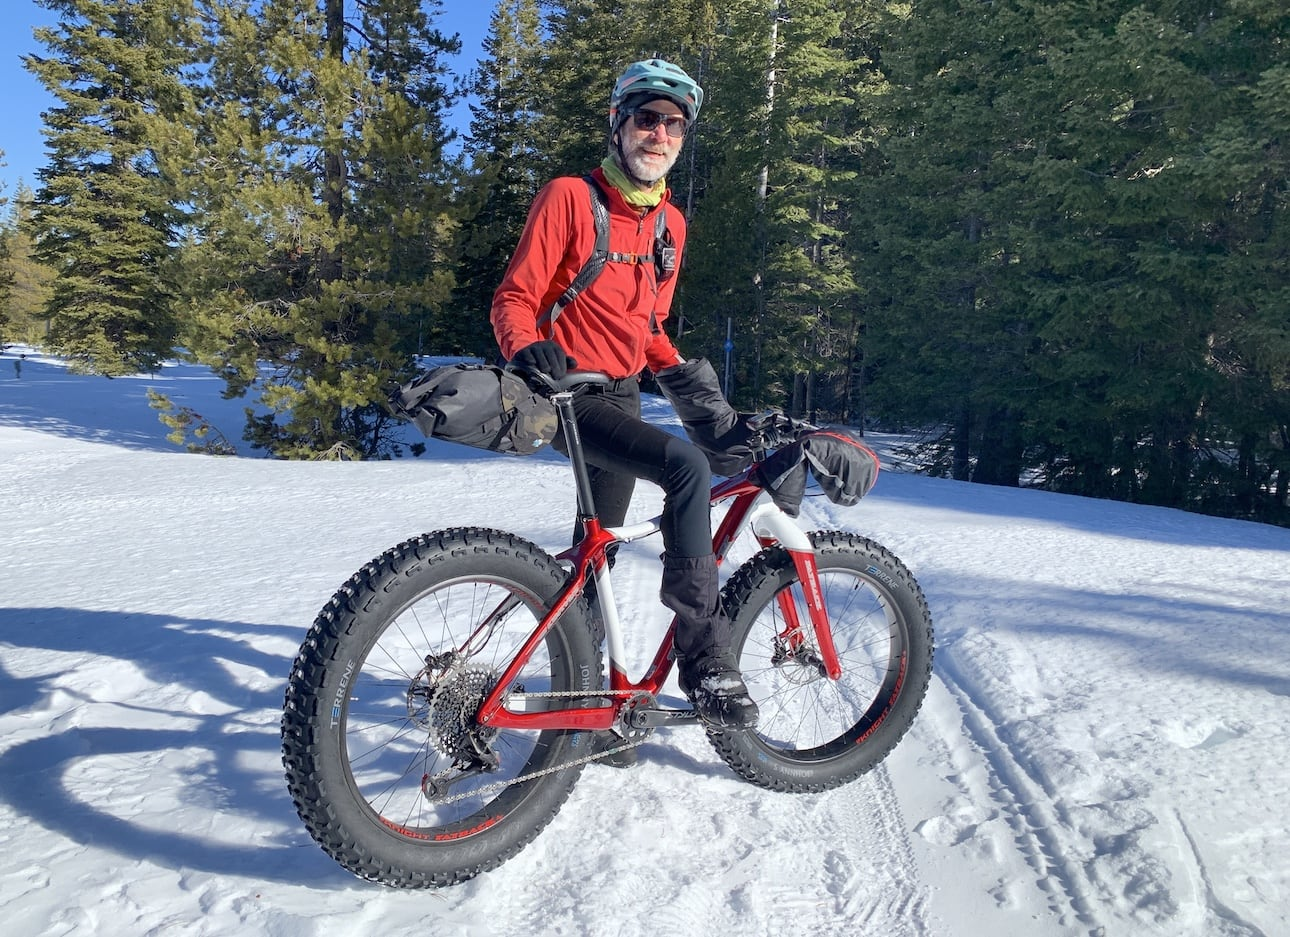 Gary Meyer poses with his fat bike in the snow.